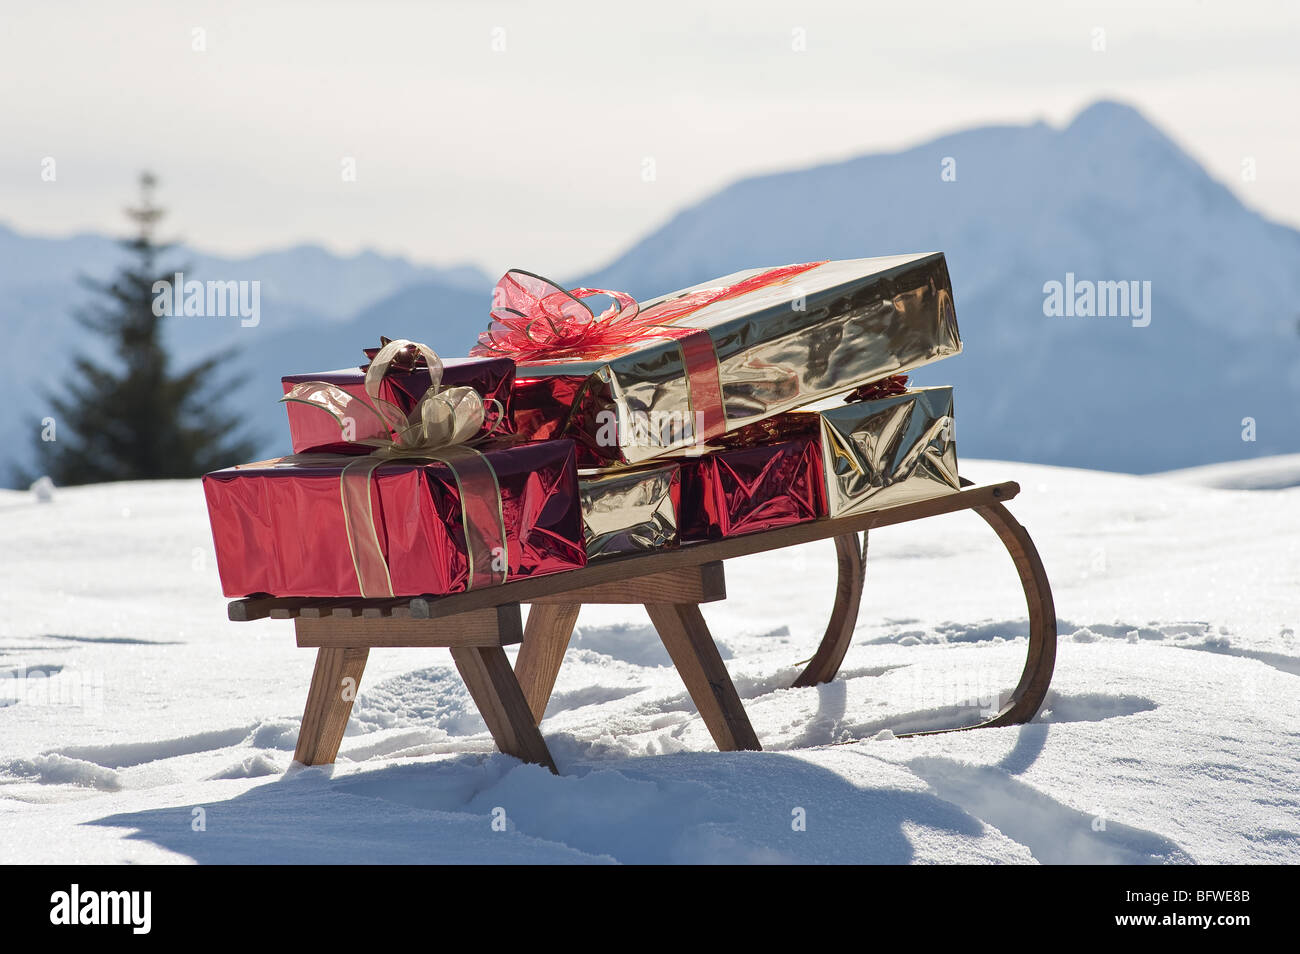 Sleigh with presents in snowy landscape - Stock Image